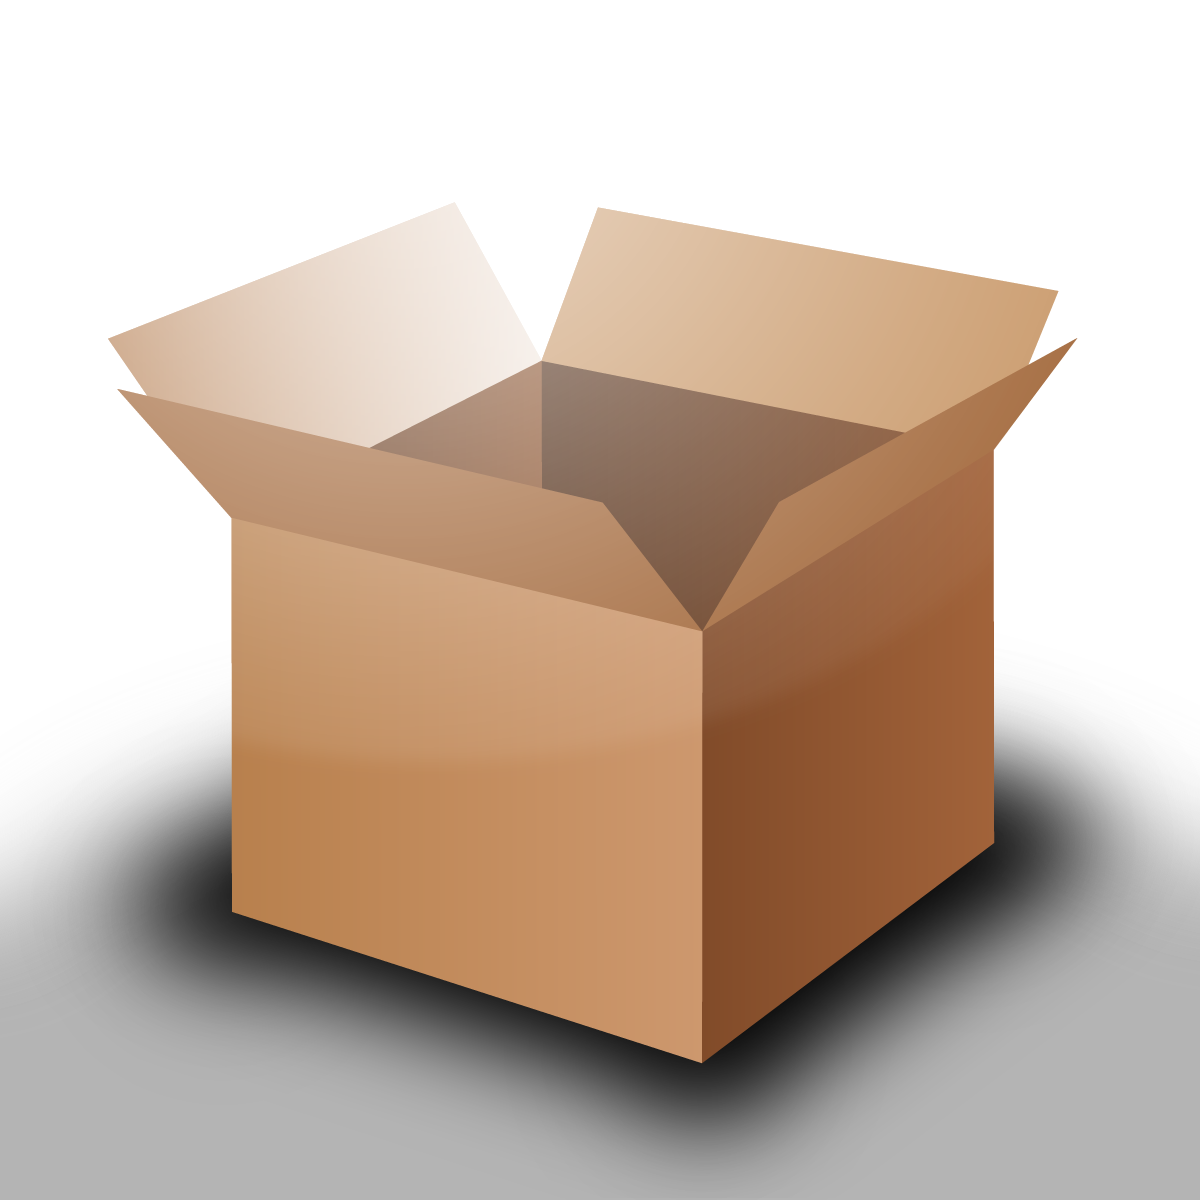 cardboard box png. fileopen cardboard box huskypng png